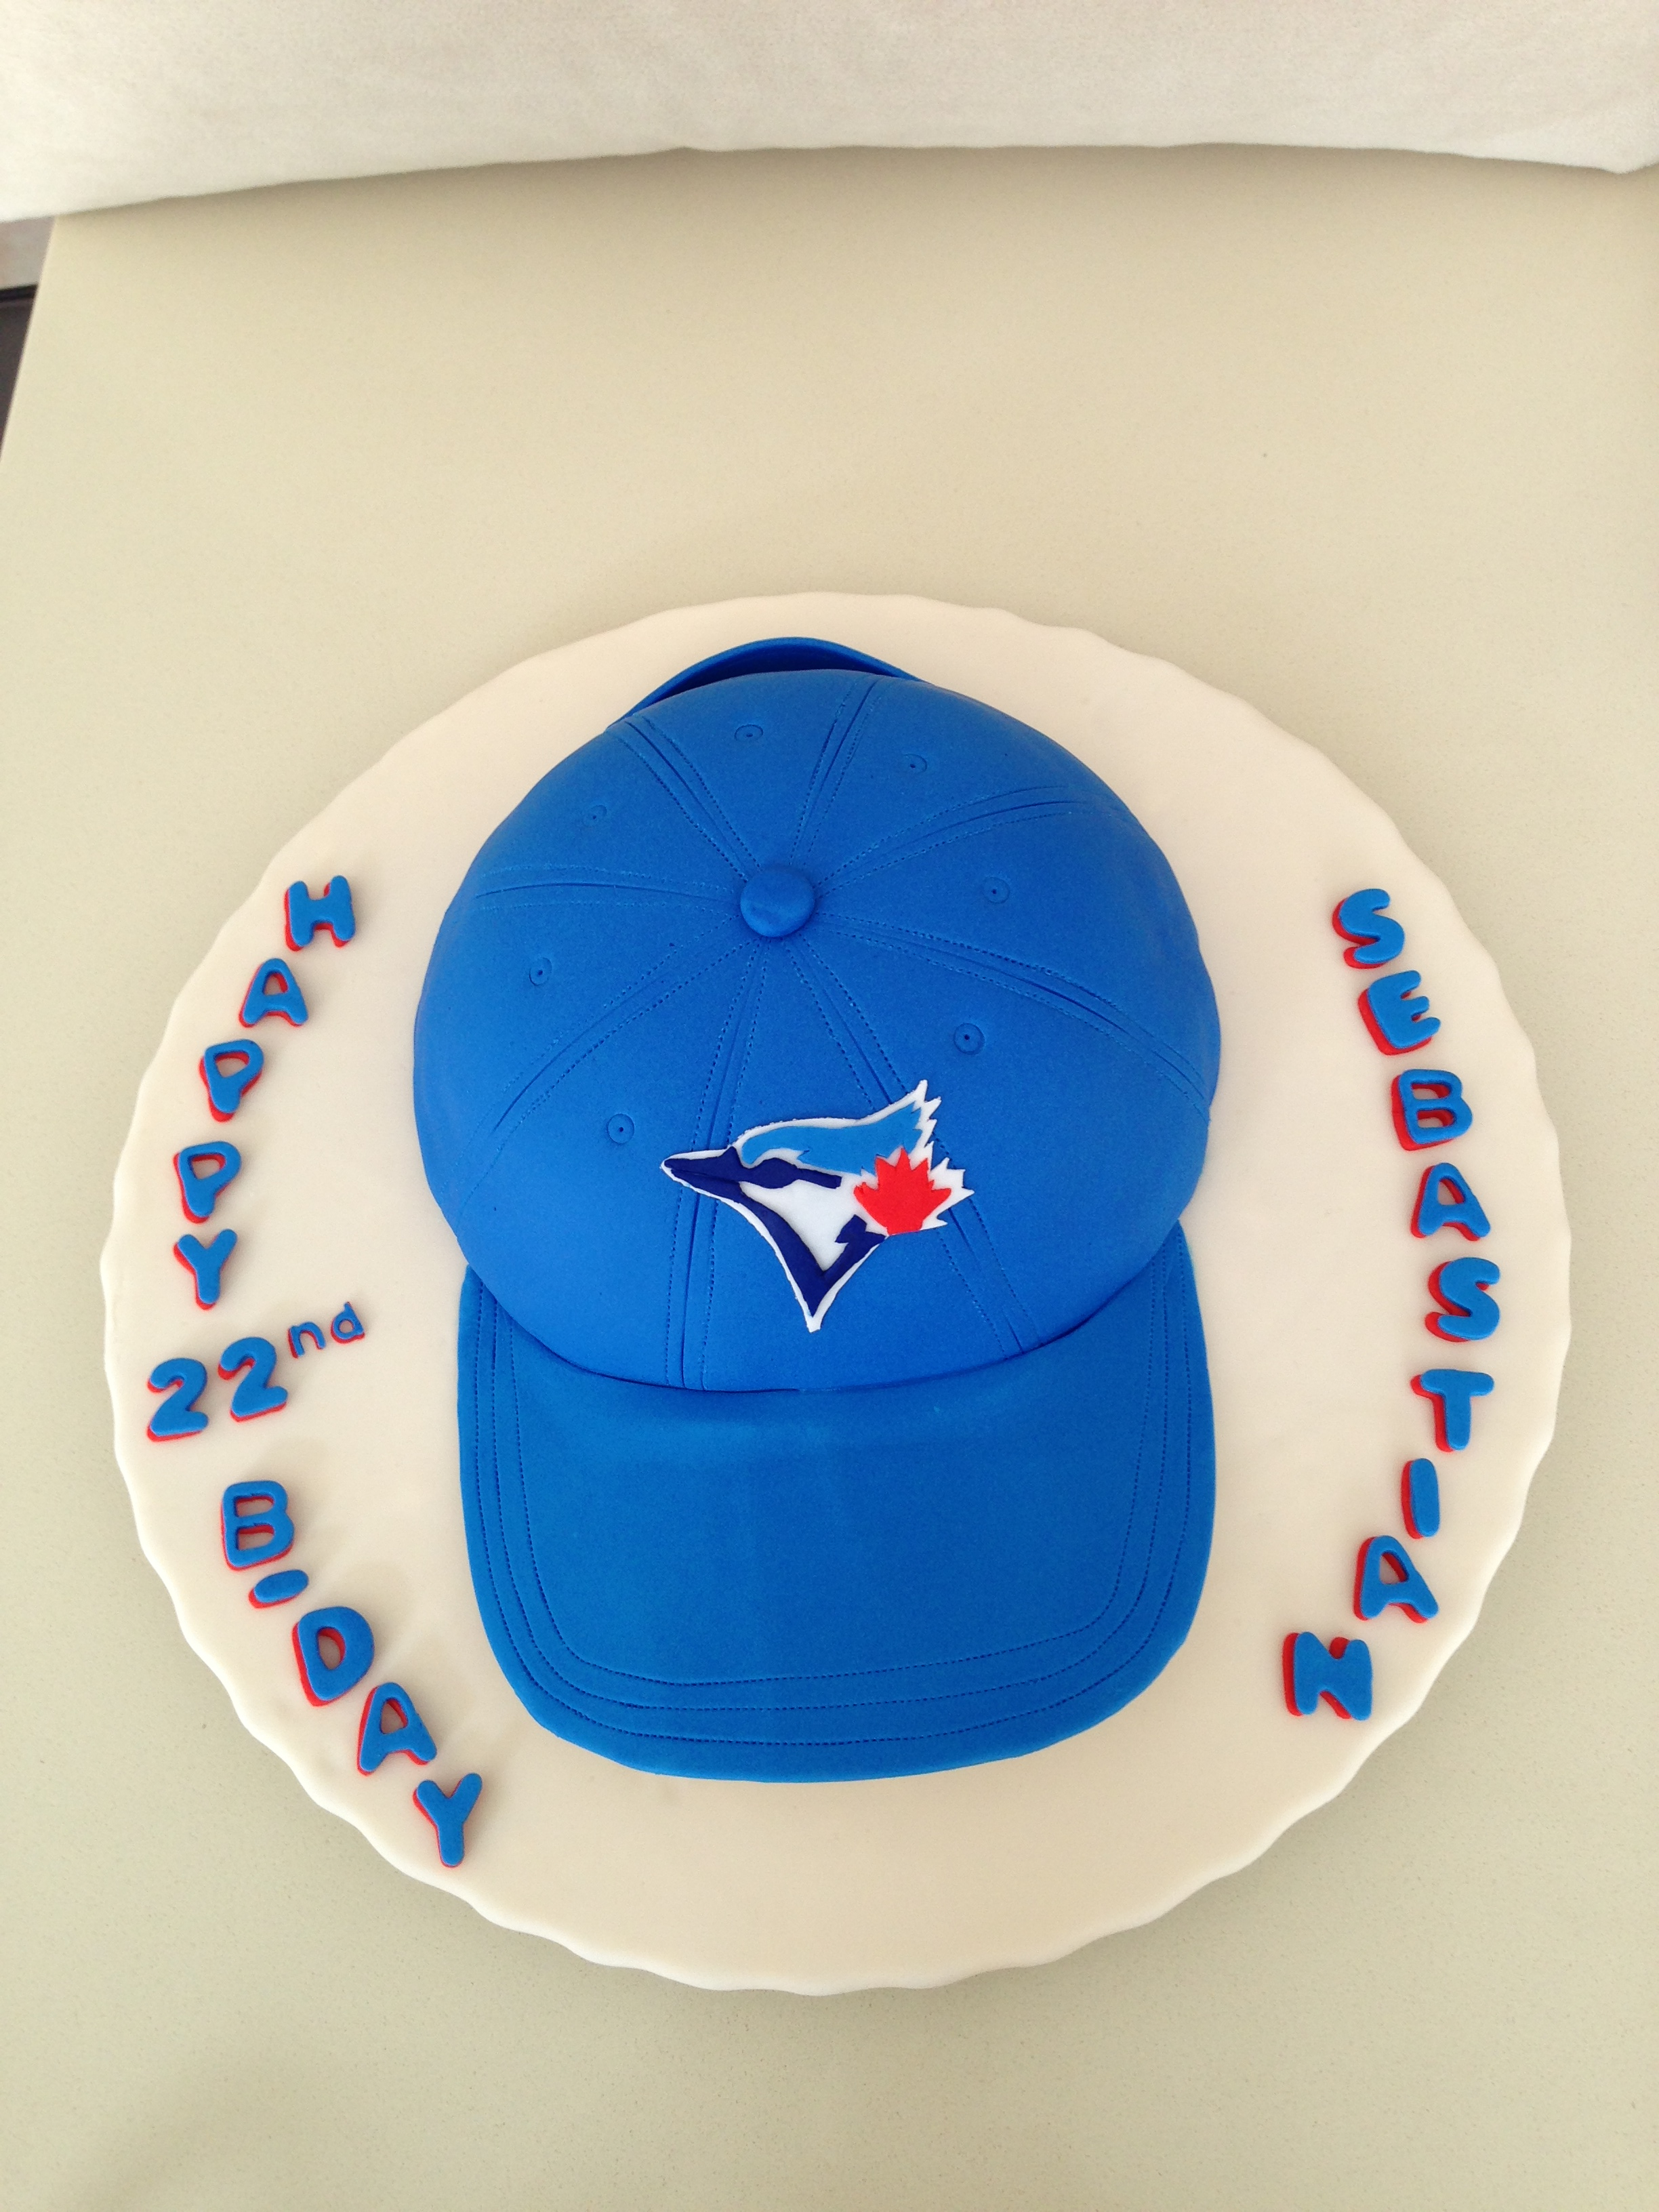 Blue Jays Cake Images : Sports team birthday cakeThe Sweet House